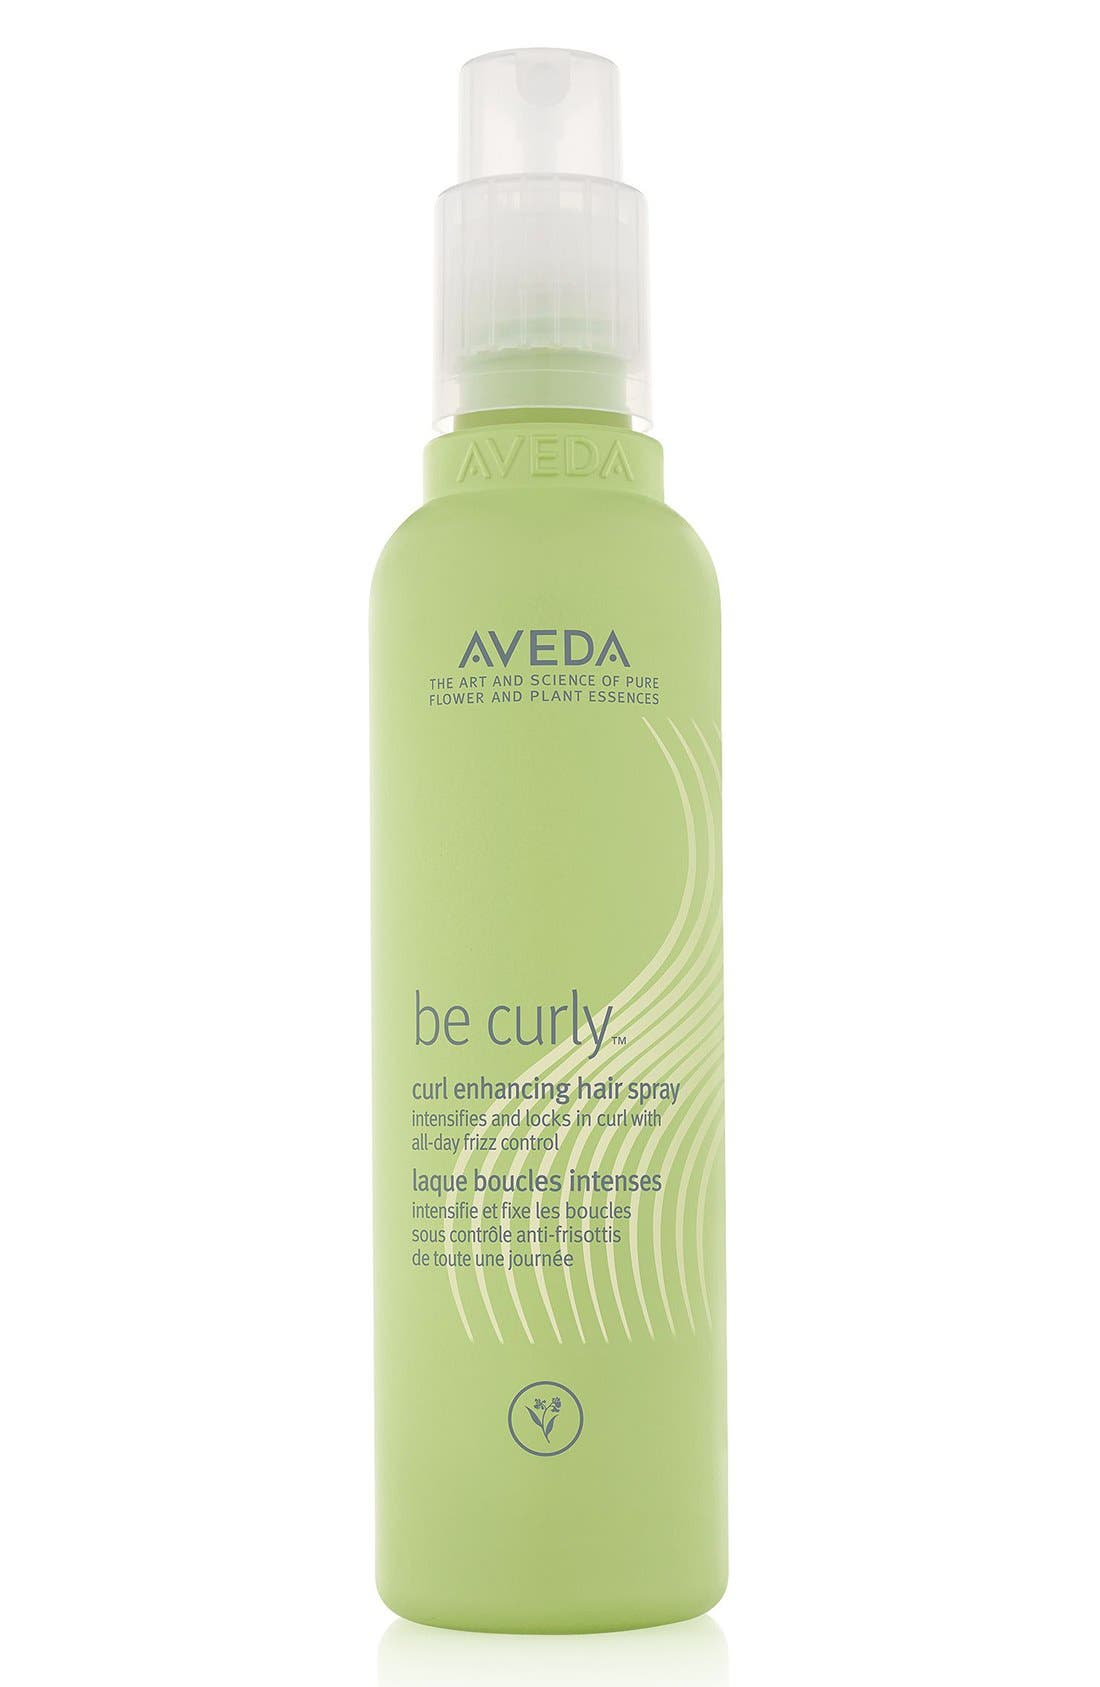 Aveda be curly™ Curl Enhancing Spray